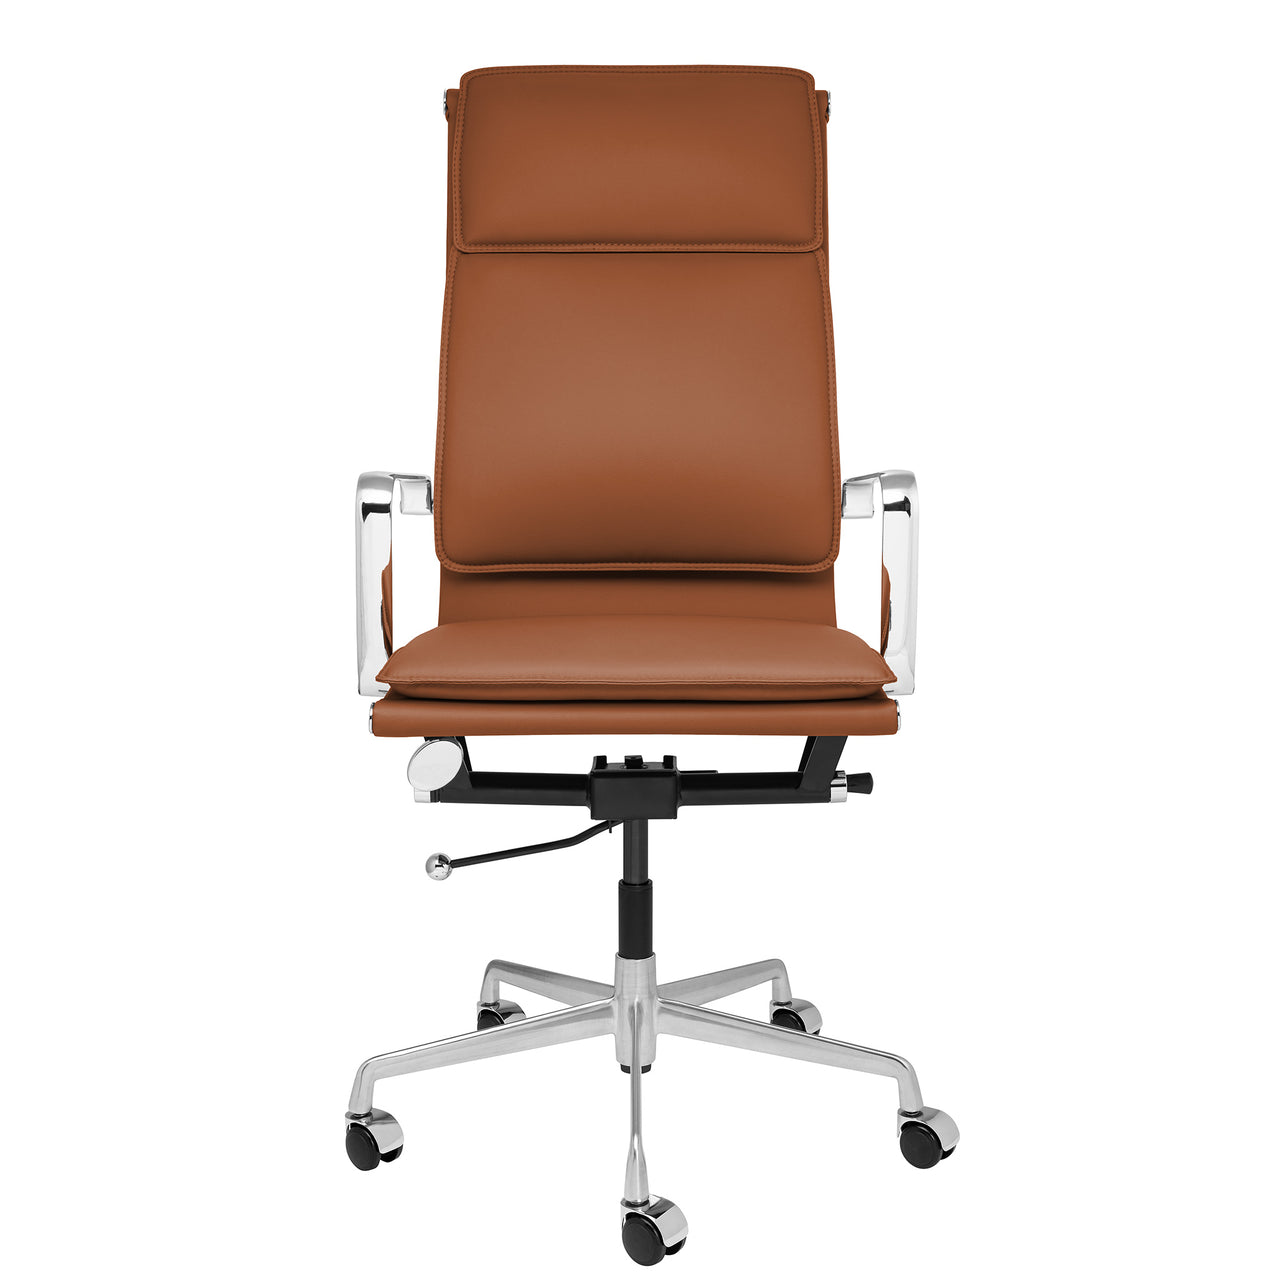 SHIPS MARCH 9TH - Lexi Tall Back Soft Pad Office Chair (Brown)